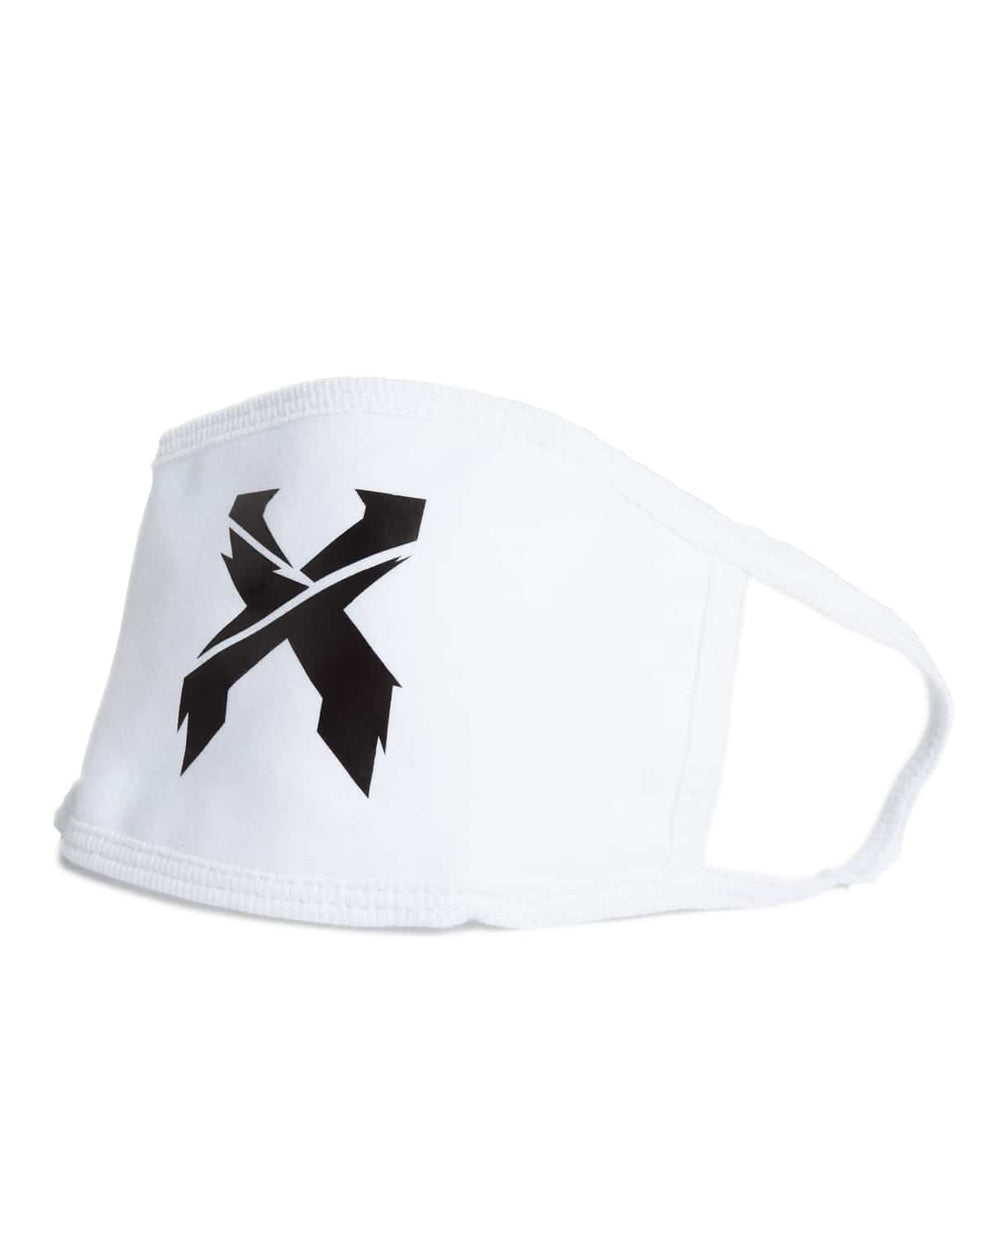 Excision 'Sliced' Logo Mouth Mask - White